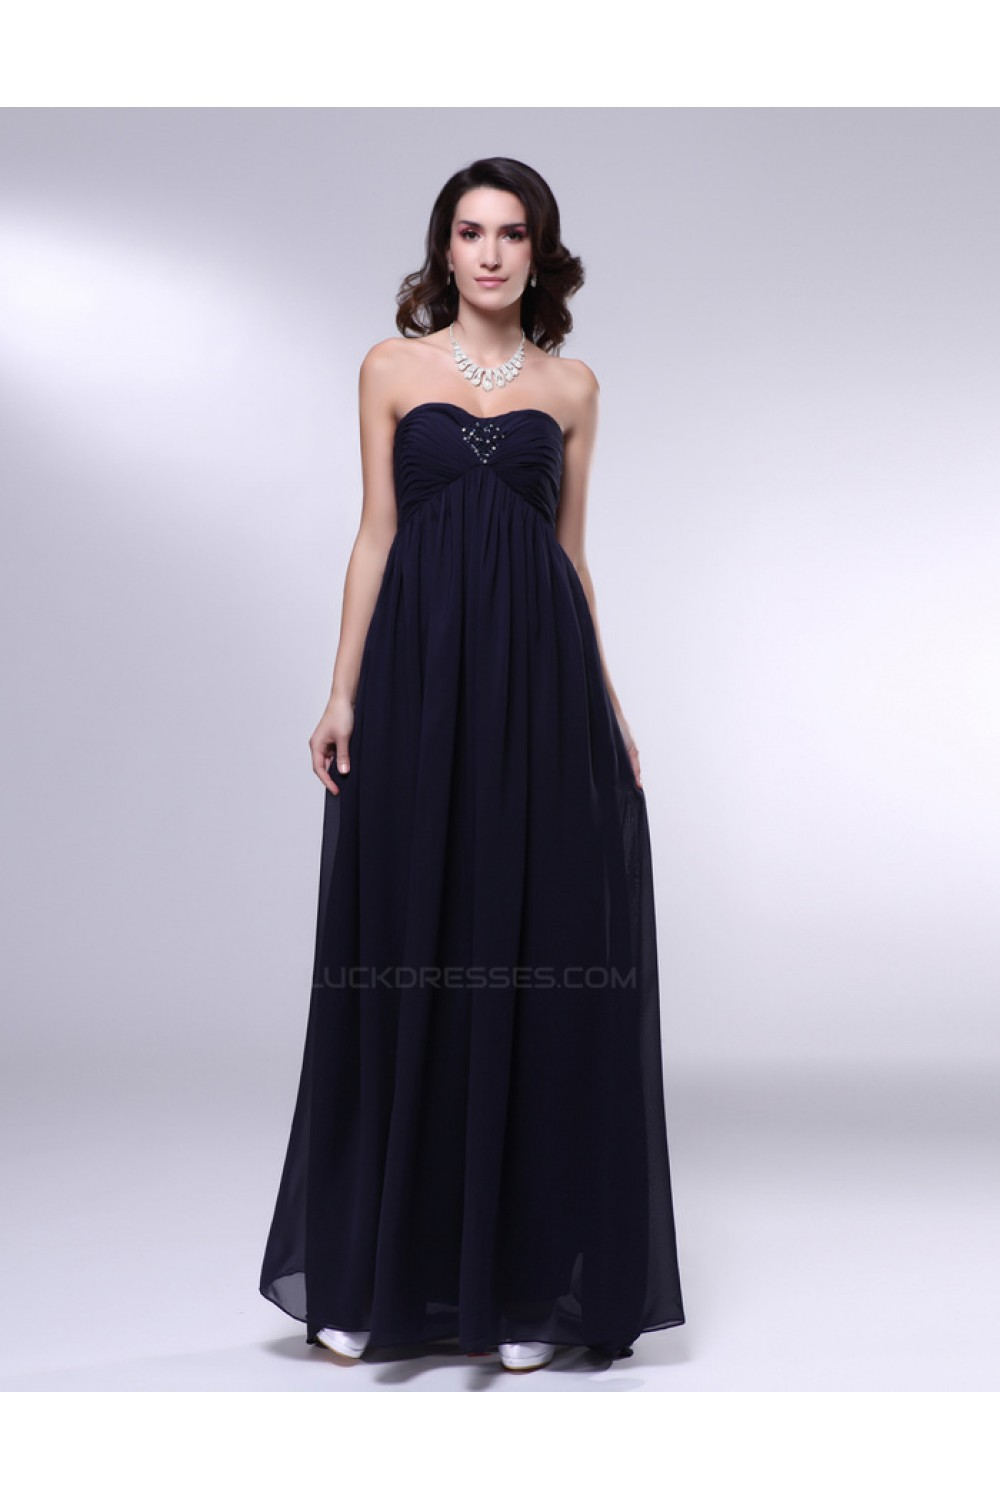 b80845d2bd8f Empire Strapless Beaded Navy Blue Long Chiffon Prom Evening Formal Dresses  Maternity Dresses ED010971